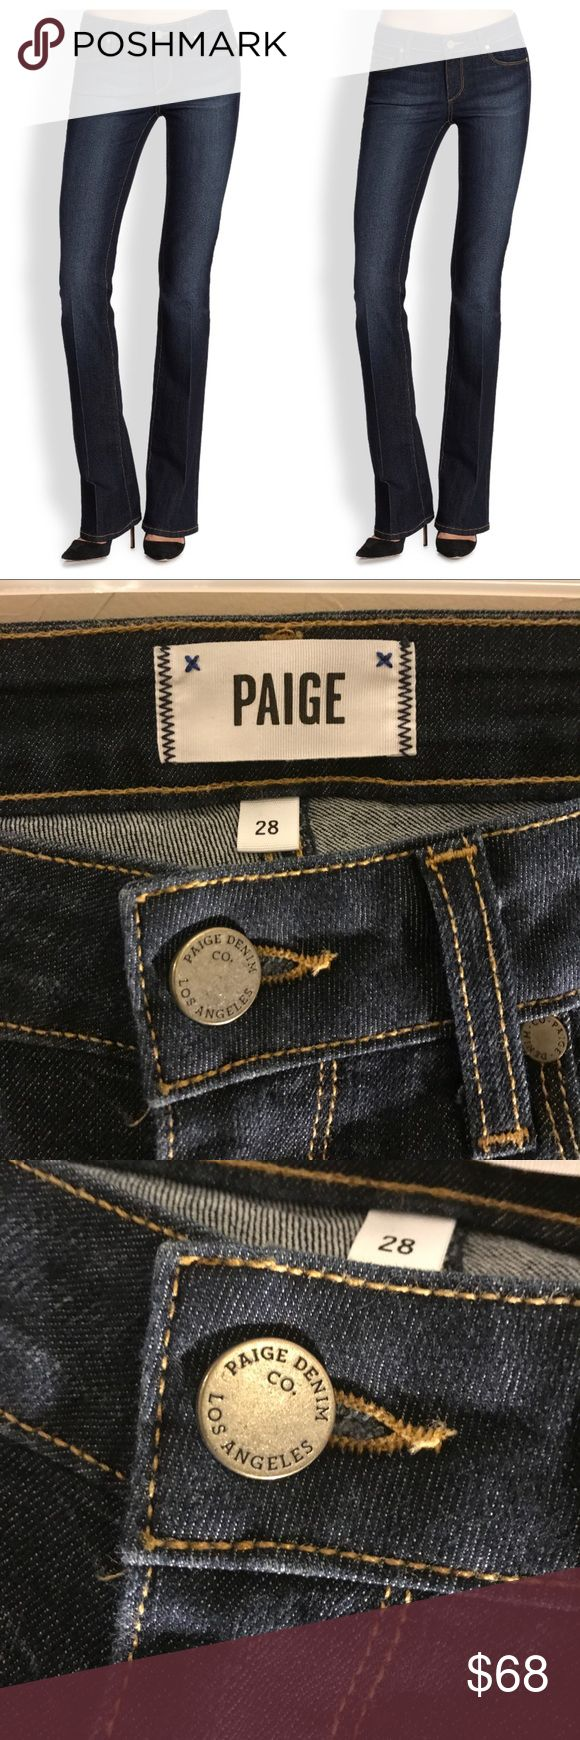 Paige Denim Manhattan Leyland Baby Boot cut  jeans Paige Denim Manhattan Leyland Baby Boot cut jeans • NWOT • purchased from Saks Fifth Avenue • no trades Paige Jeans Jeans Boot Cut